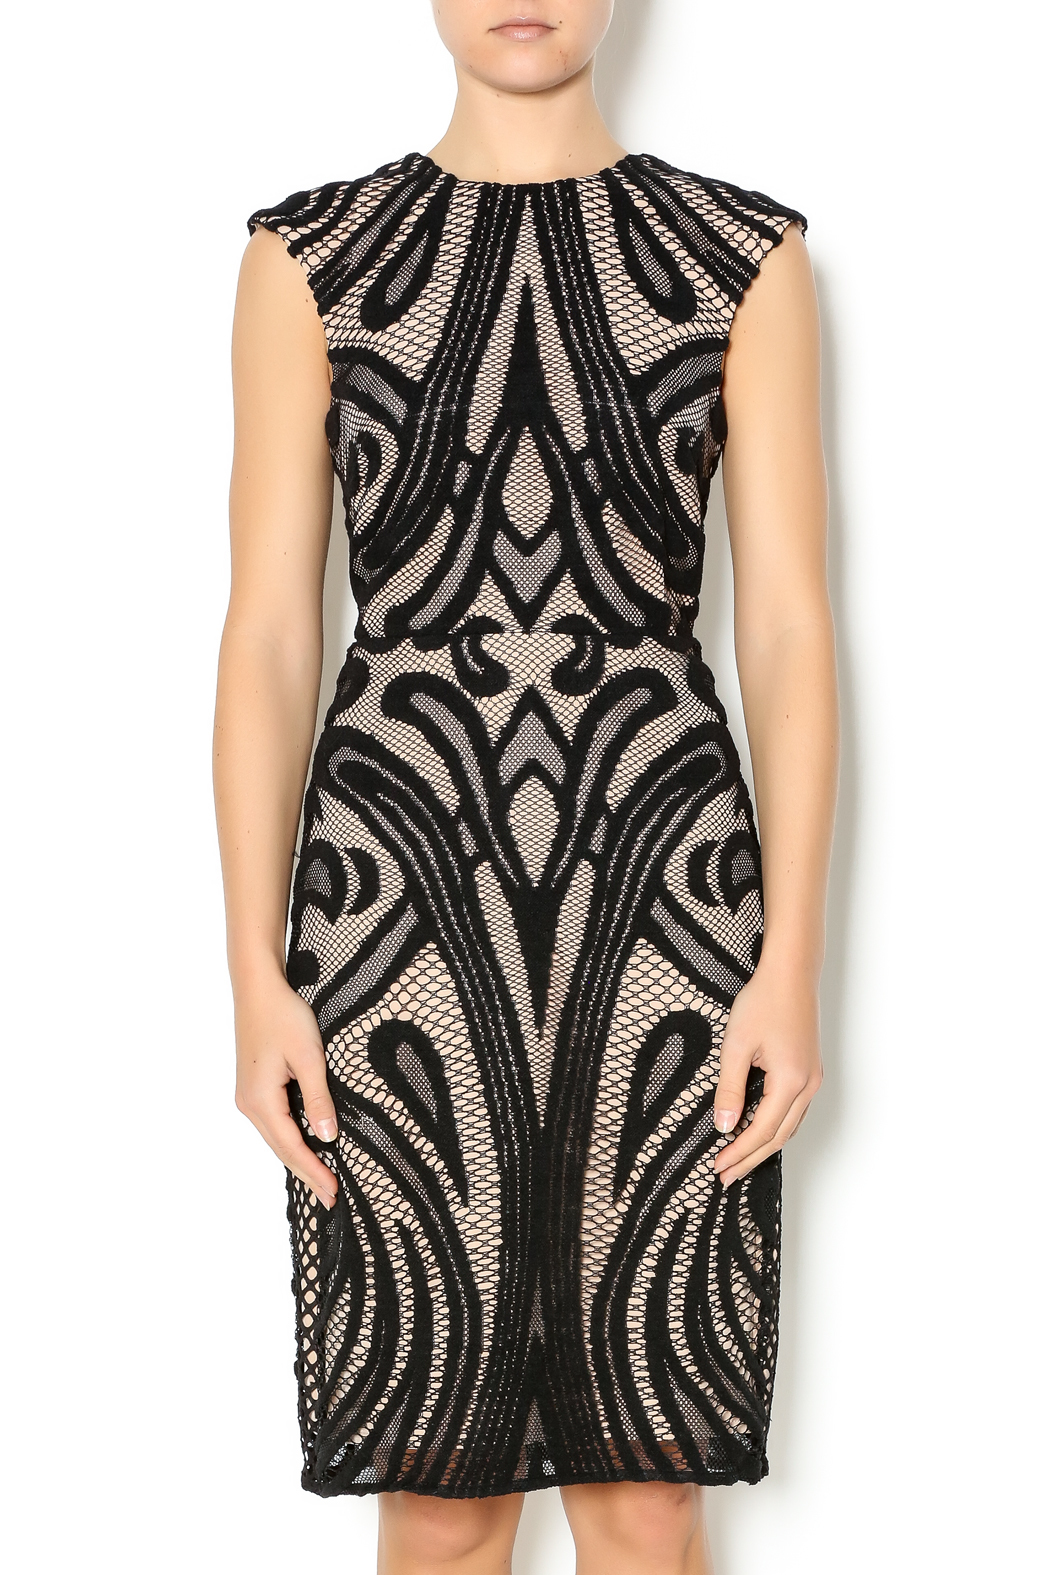 Lumiere Black Lace Dress - Main Image